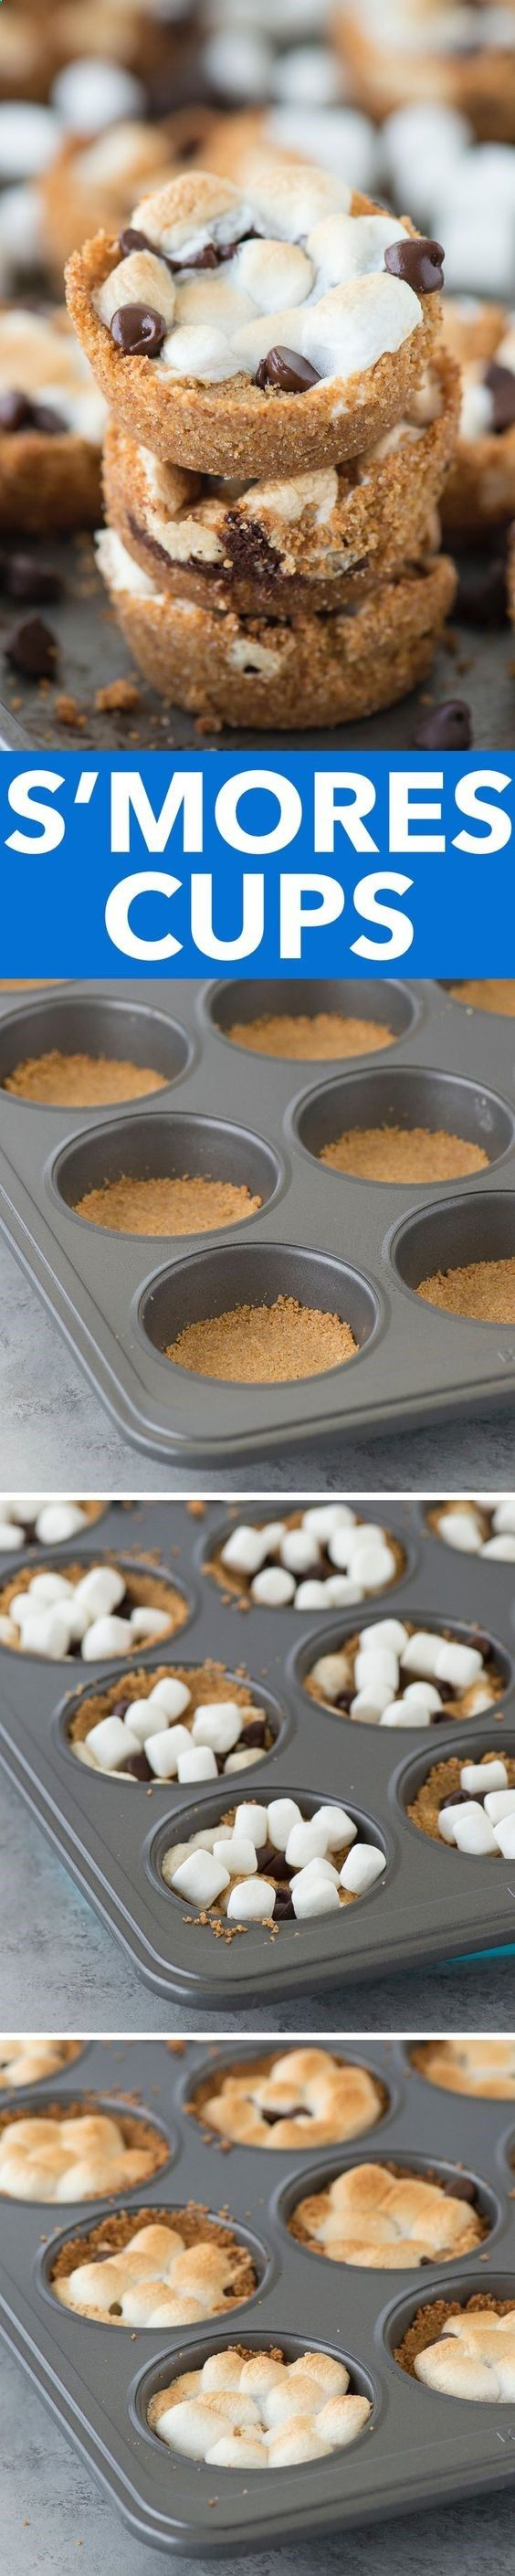 5 ingredient indoor S'mores Cups! Make these in a regular muffin pan. Like a cross between smores cookies and smores cupcakes!